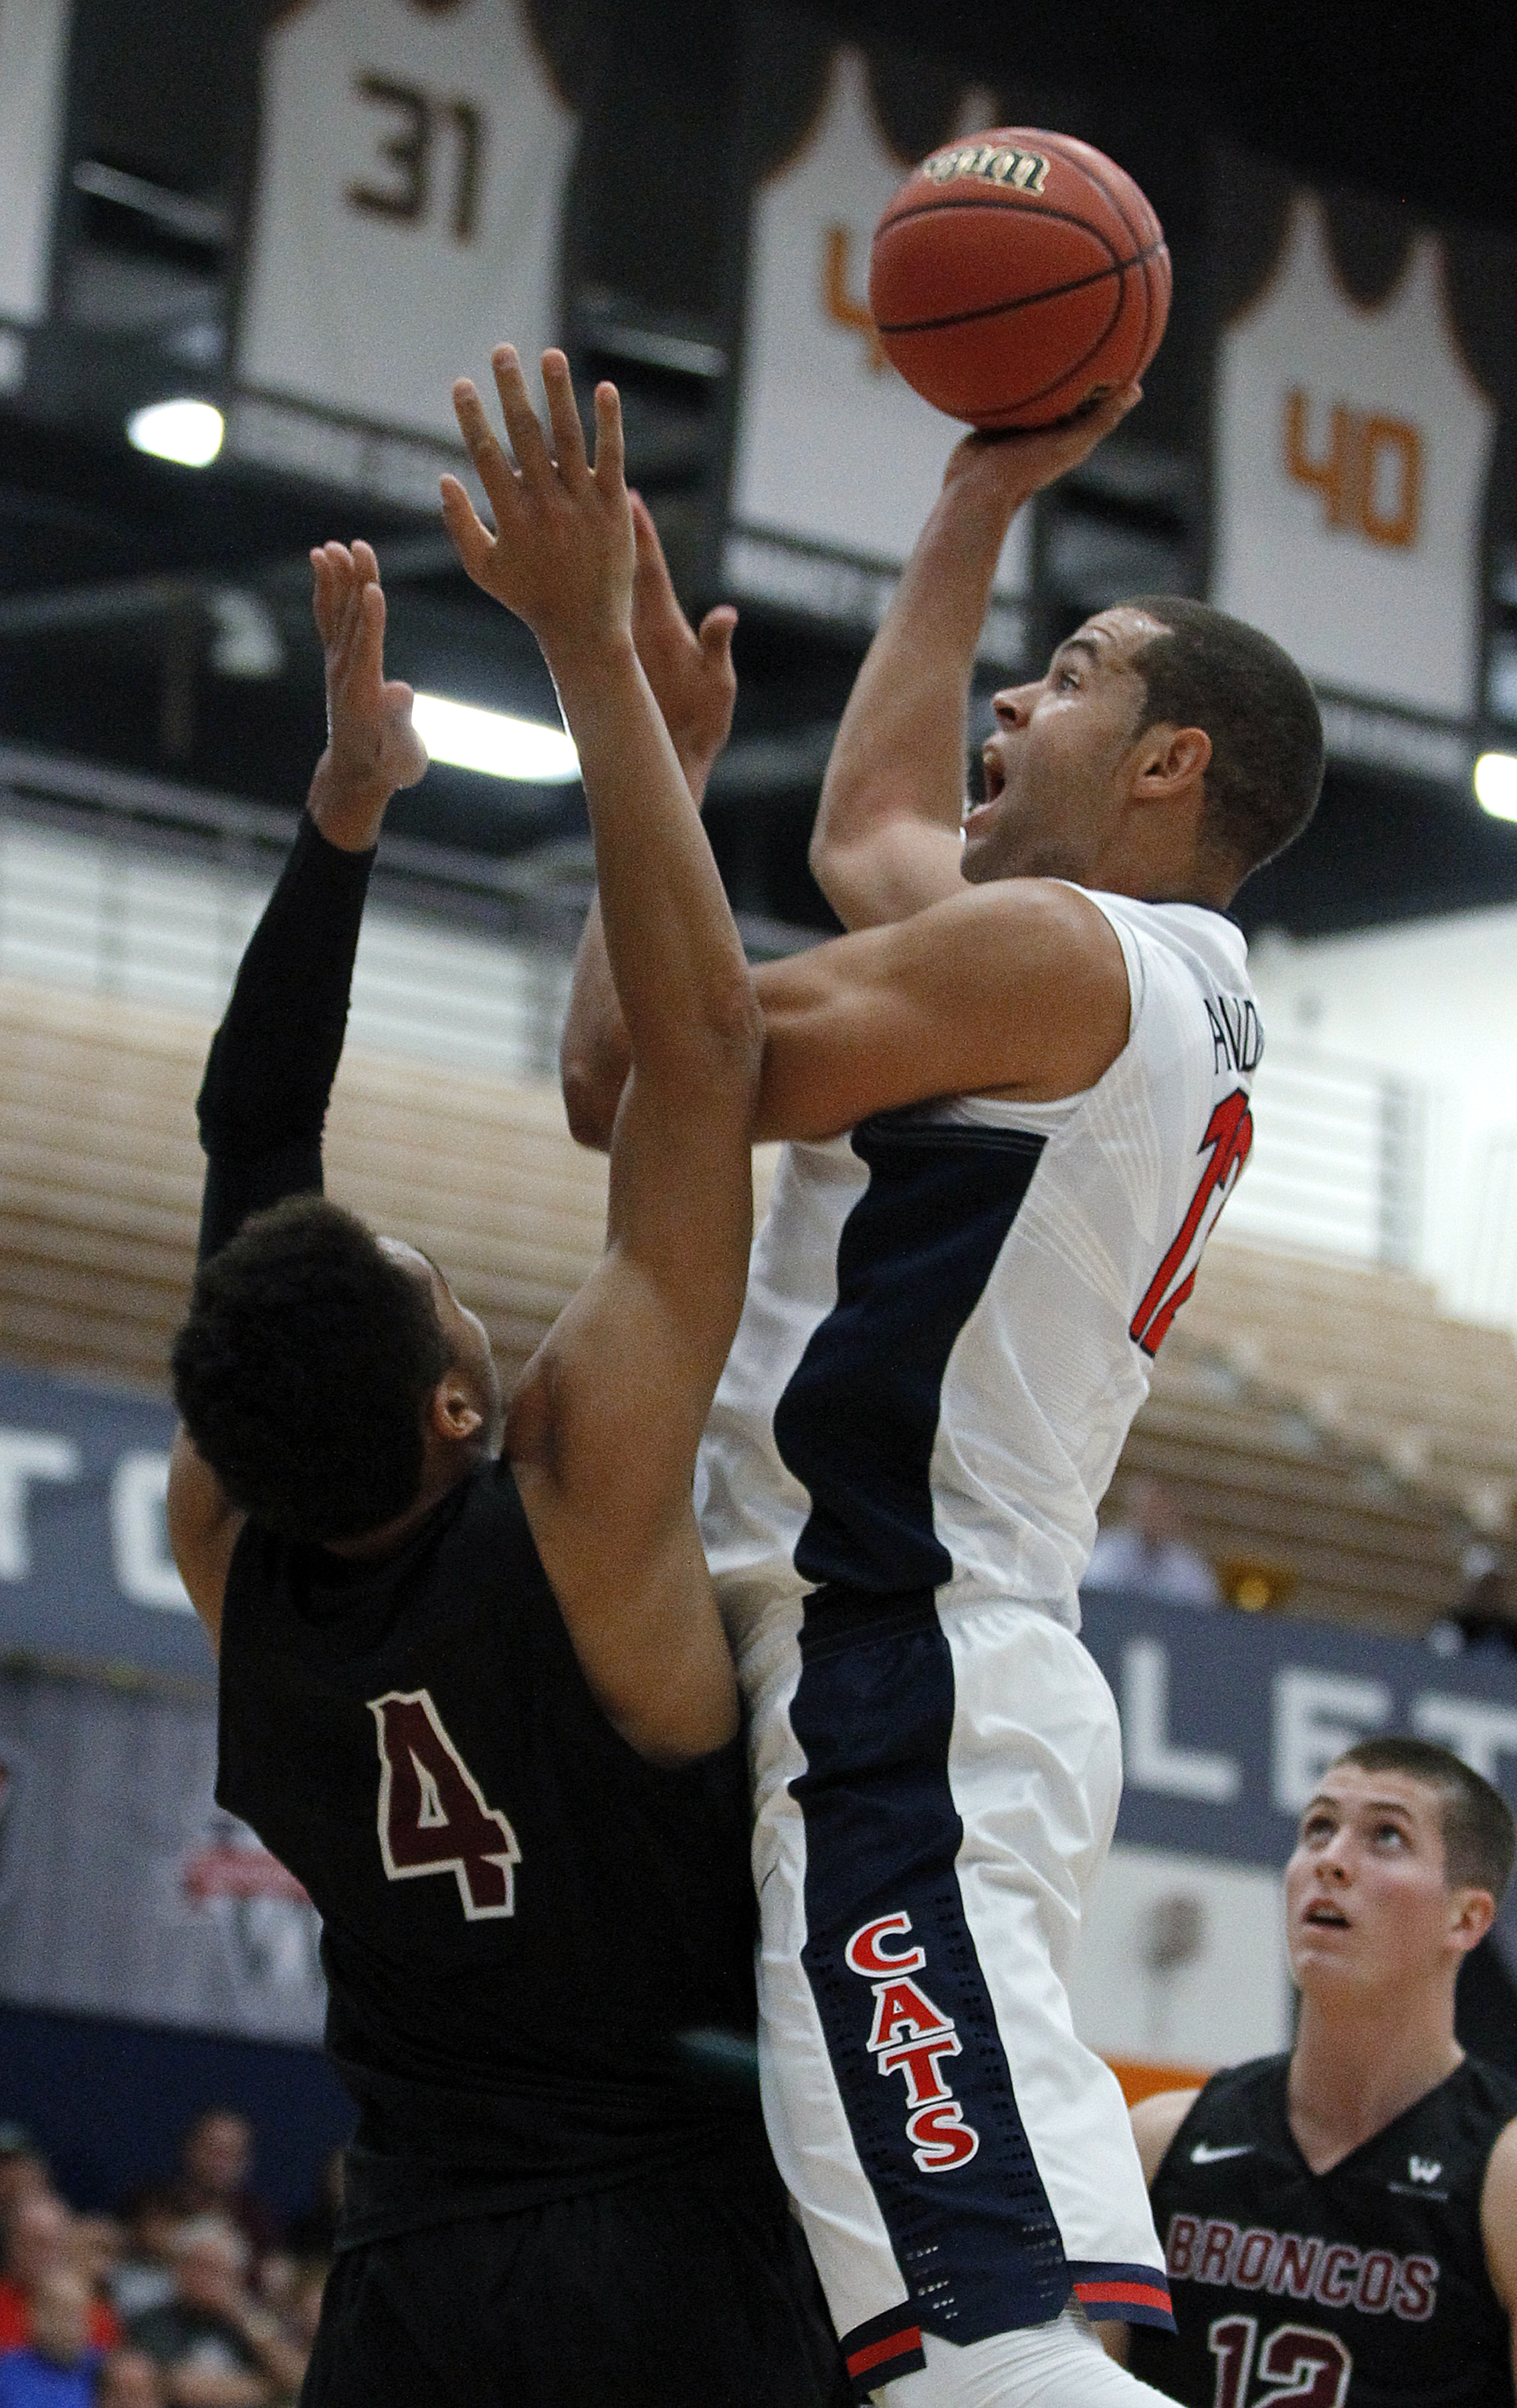 Arizona forward Ryan Anderson shoots over Santa Clara guard Jarvis Pugh during the first half of an NCAA college basketball game in the quarterfinals of the Wooden Legacy tournament in Fullerton, Calif., Thursday, Nov. 26, 2015. (AP Photo/Alex Gallardo)